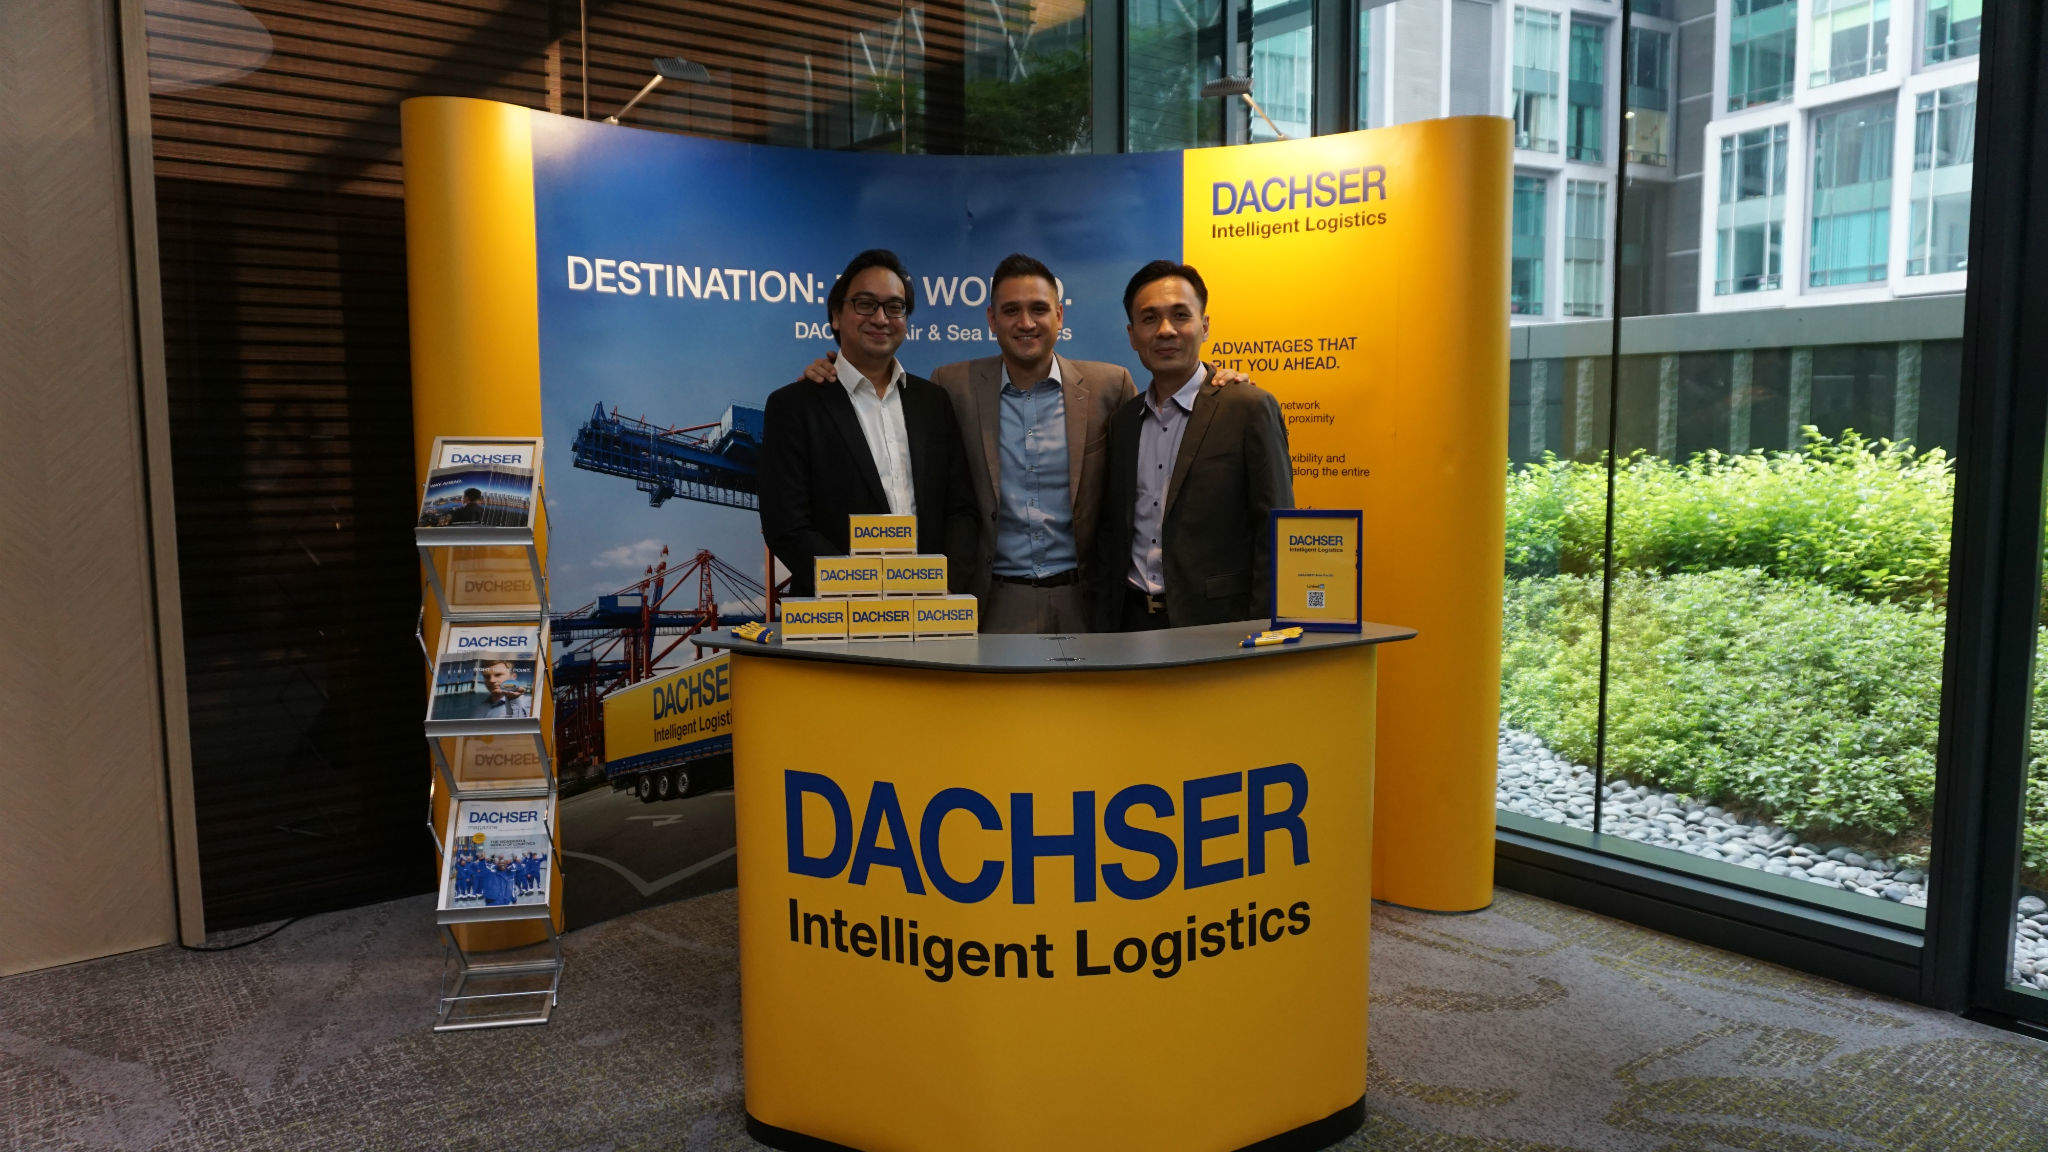 DACHSER, a reliable partner for logistics solutions.